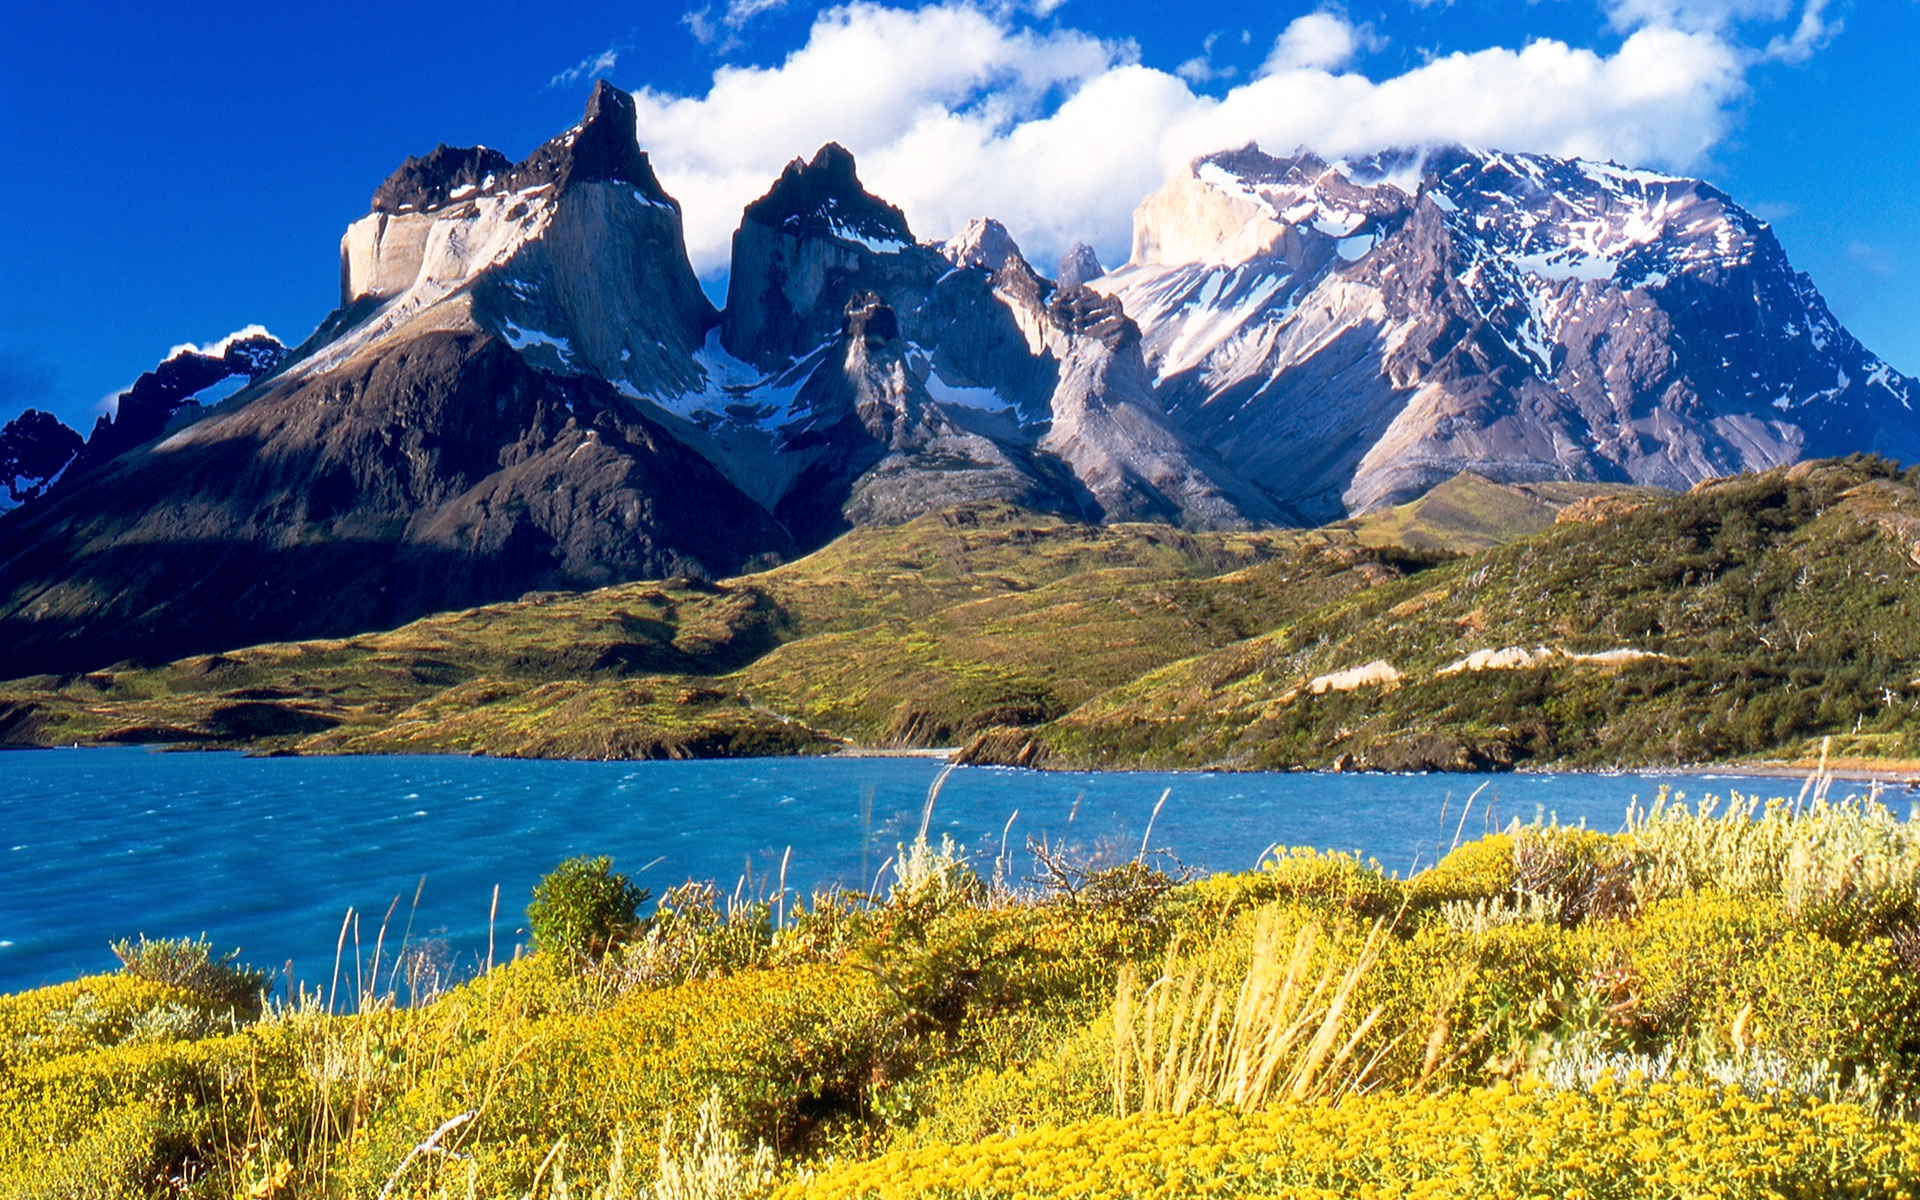 Cuernos_del_Paine_from_Lake_Pehoé (1).jpg